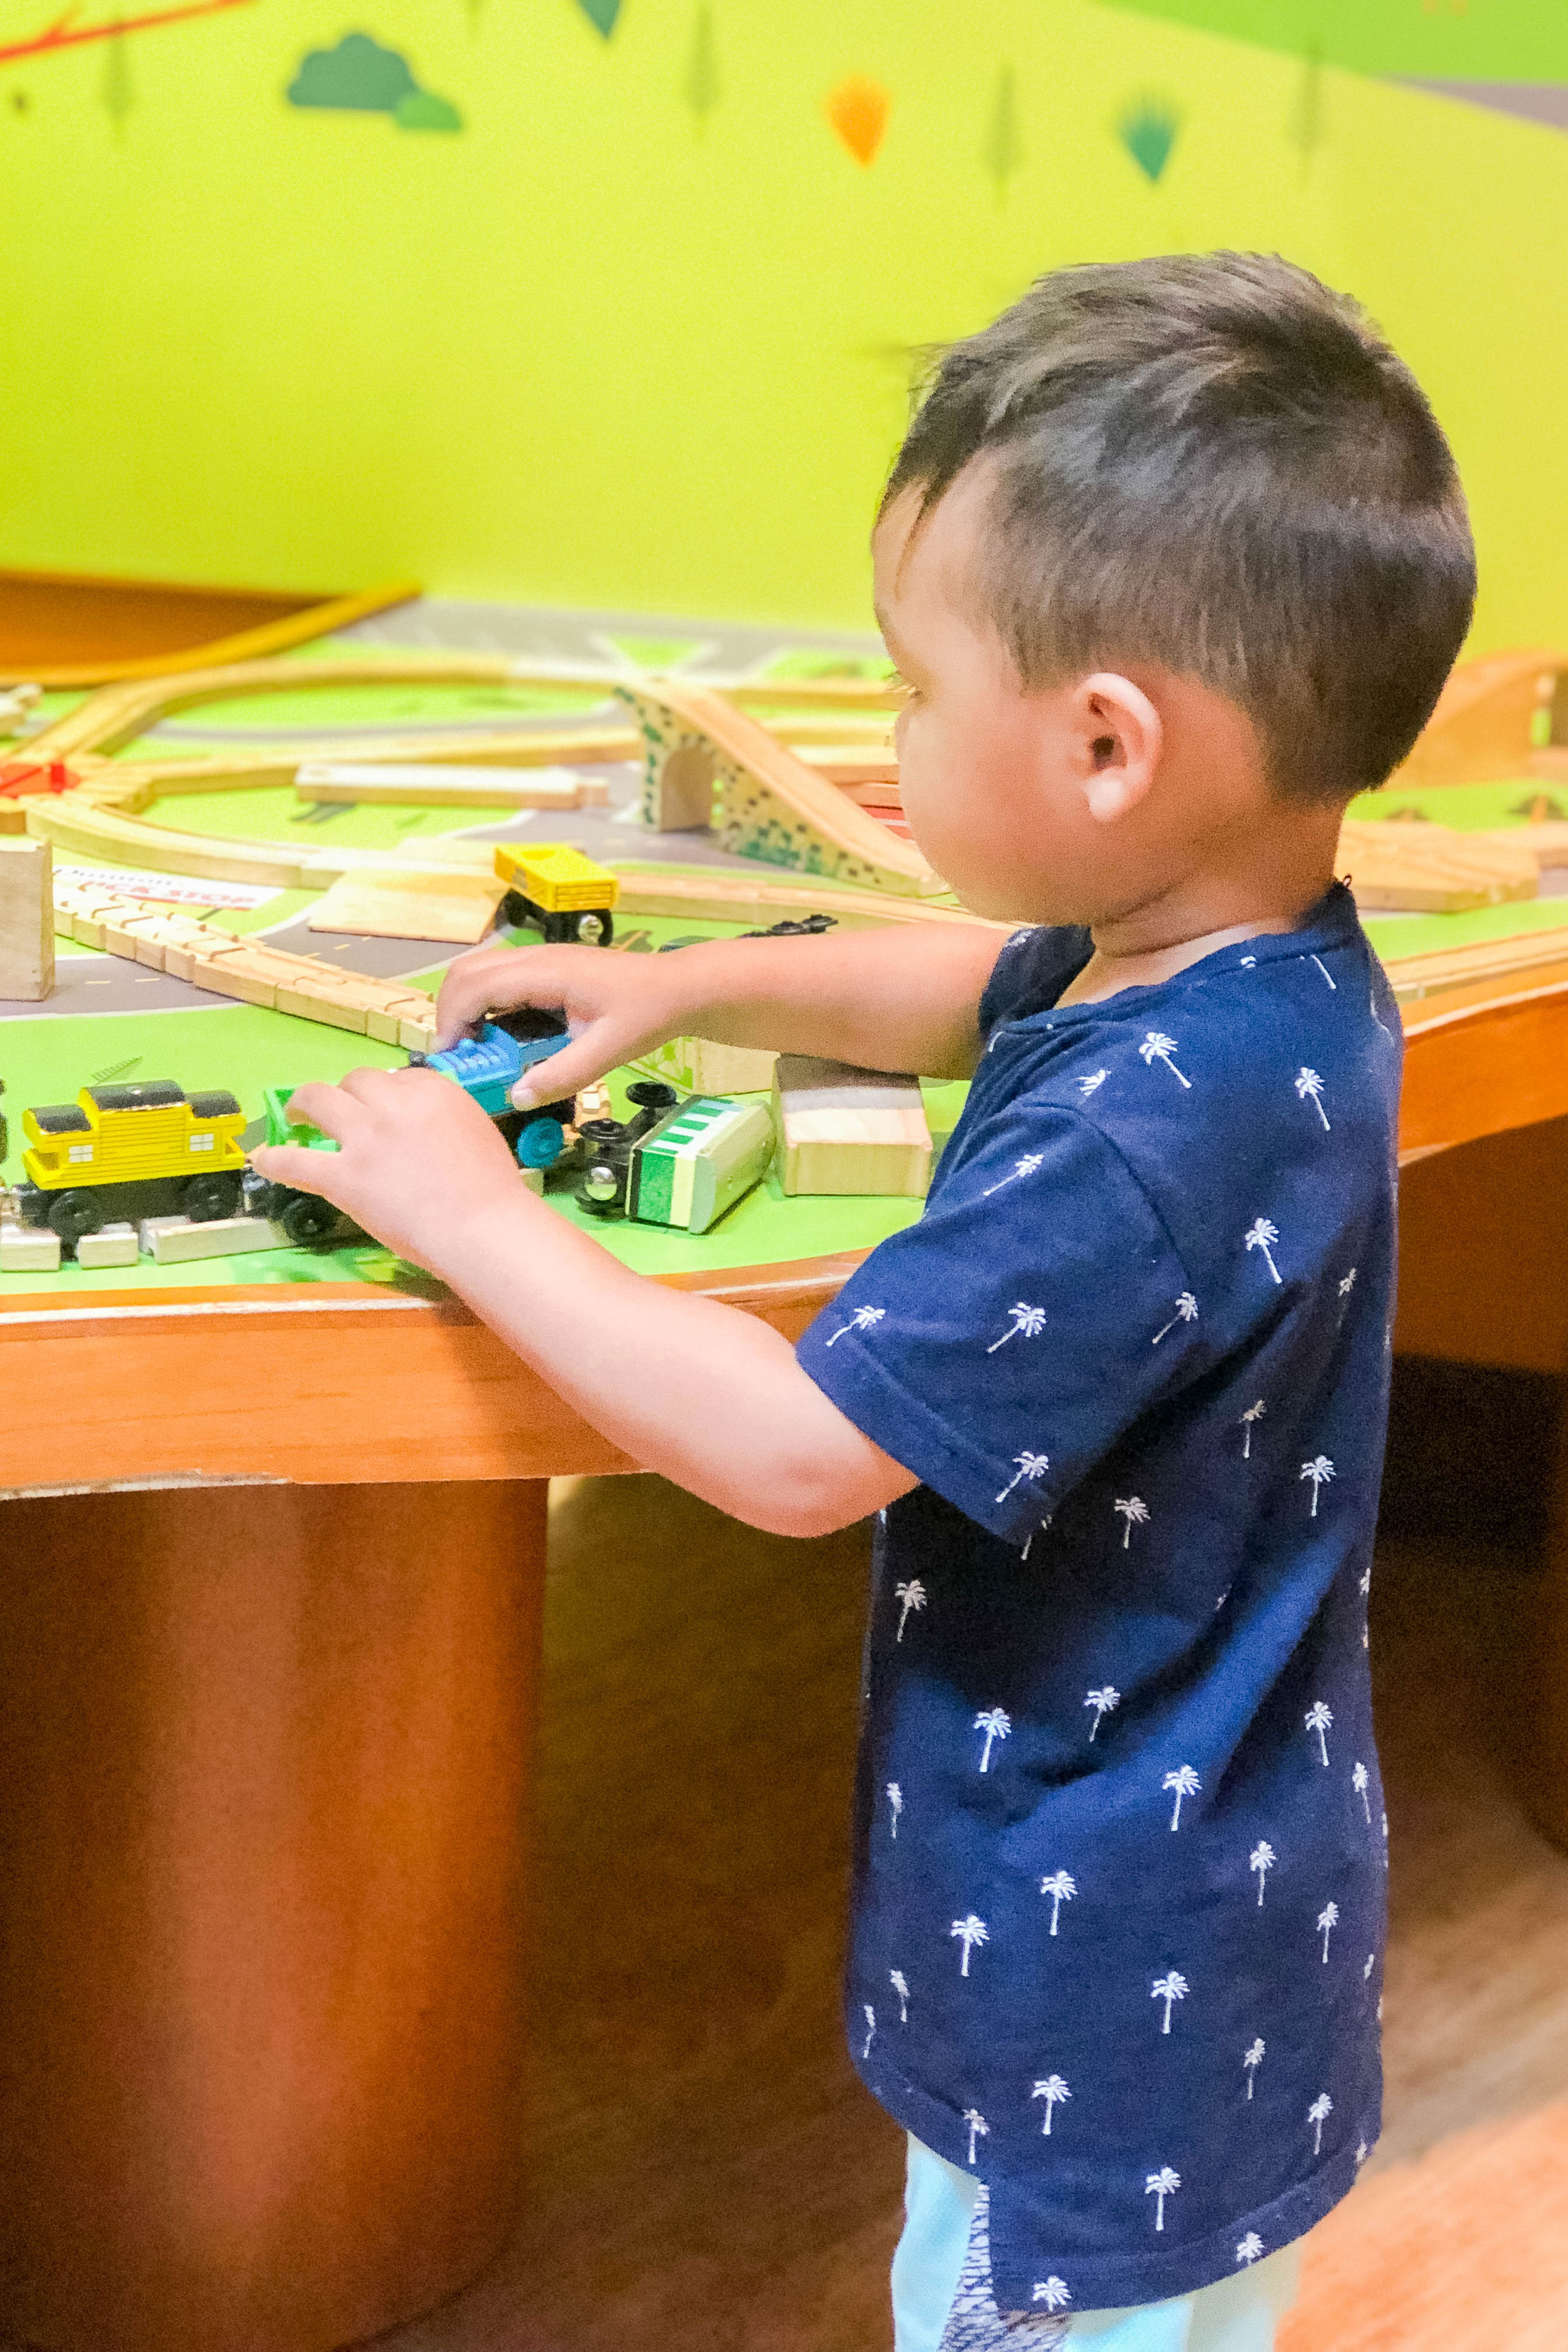 The CMON Childrens Museum in Naples, Florida should be your next adventure! Full of fun activities made for learning and exploring, your little ones will surely love it. #naplesflorida